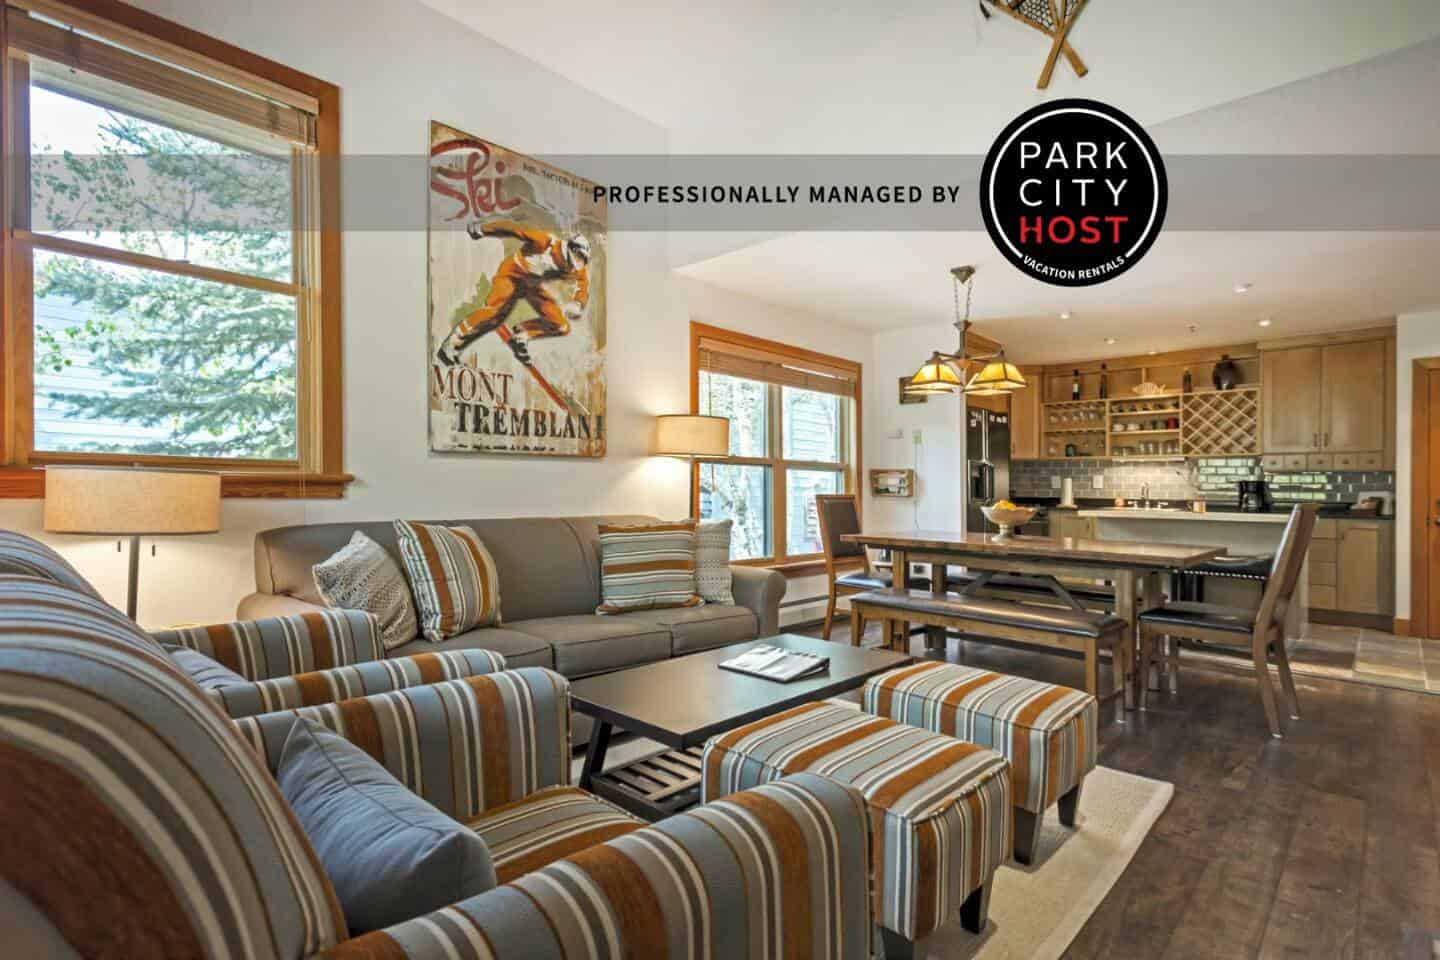 Image of Airbnb rental in Park City